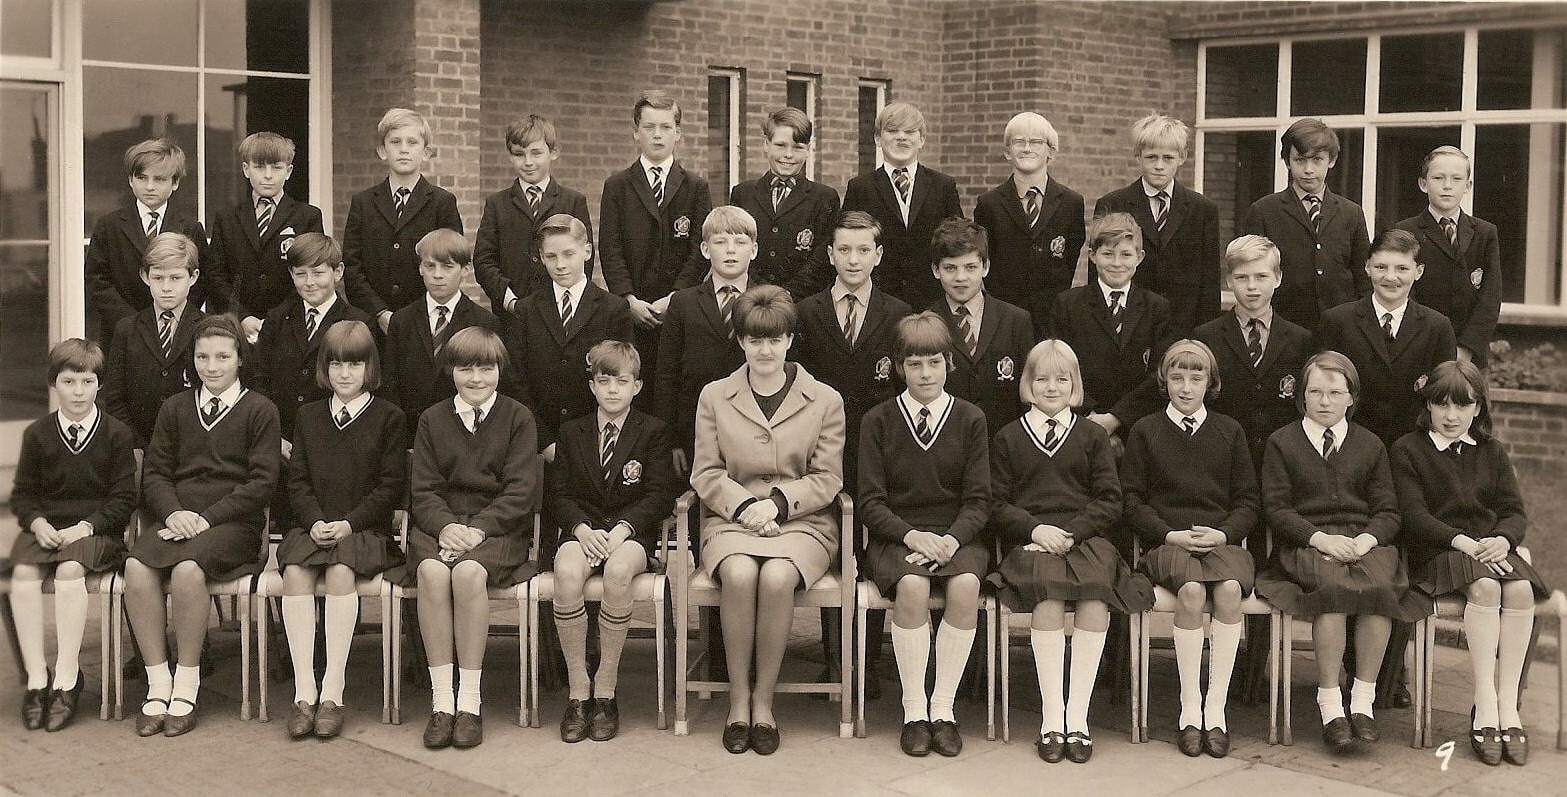 Withernsea High School 1966 class 1B